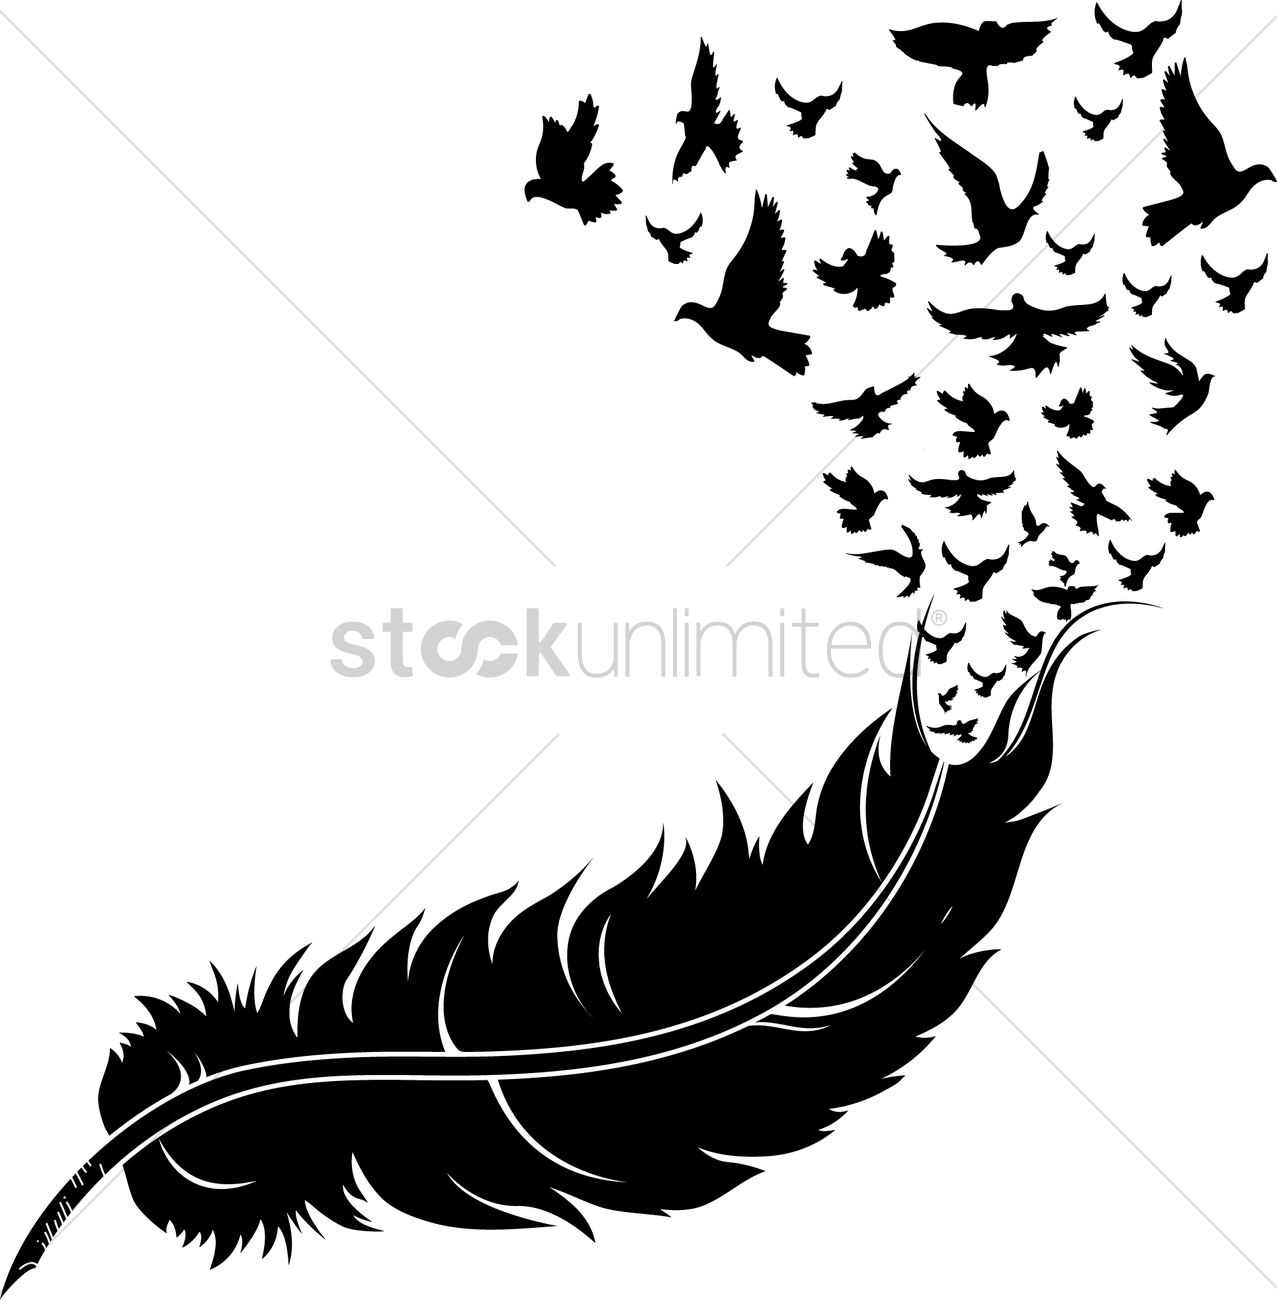 Feather turning into birds clipart clip Feather with birds Vector Image - 1514999 | StockUnlimited clip